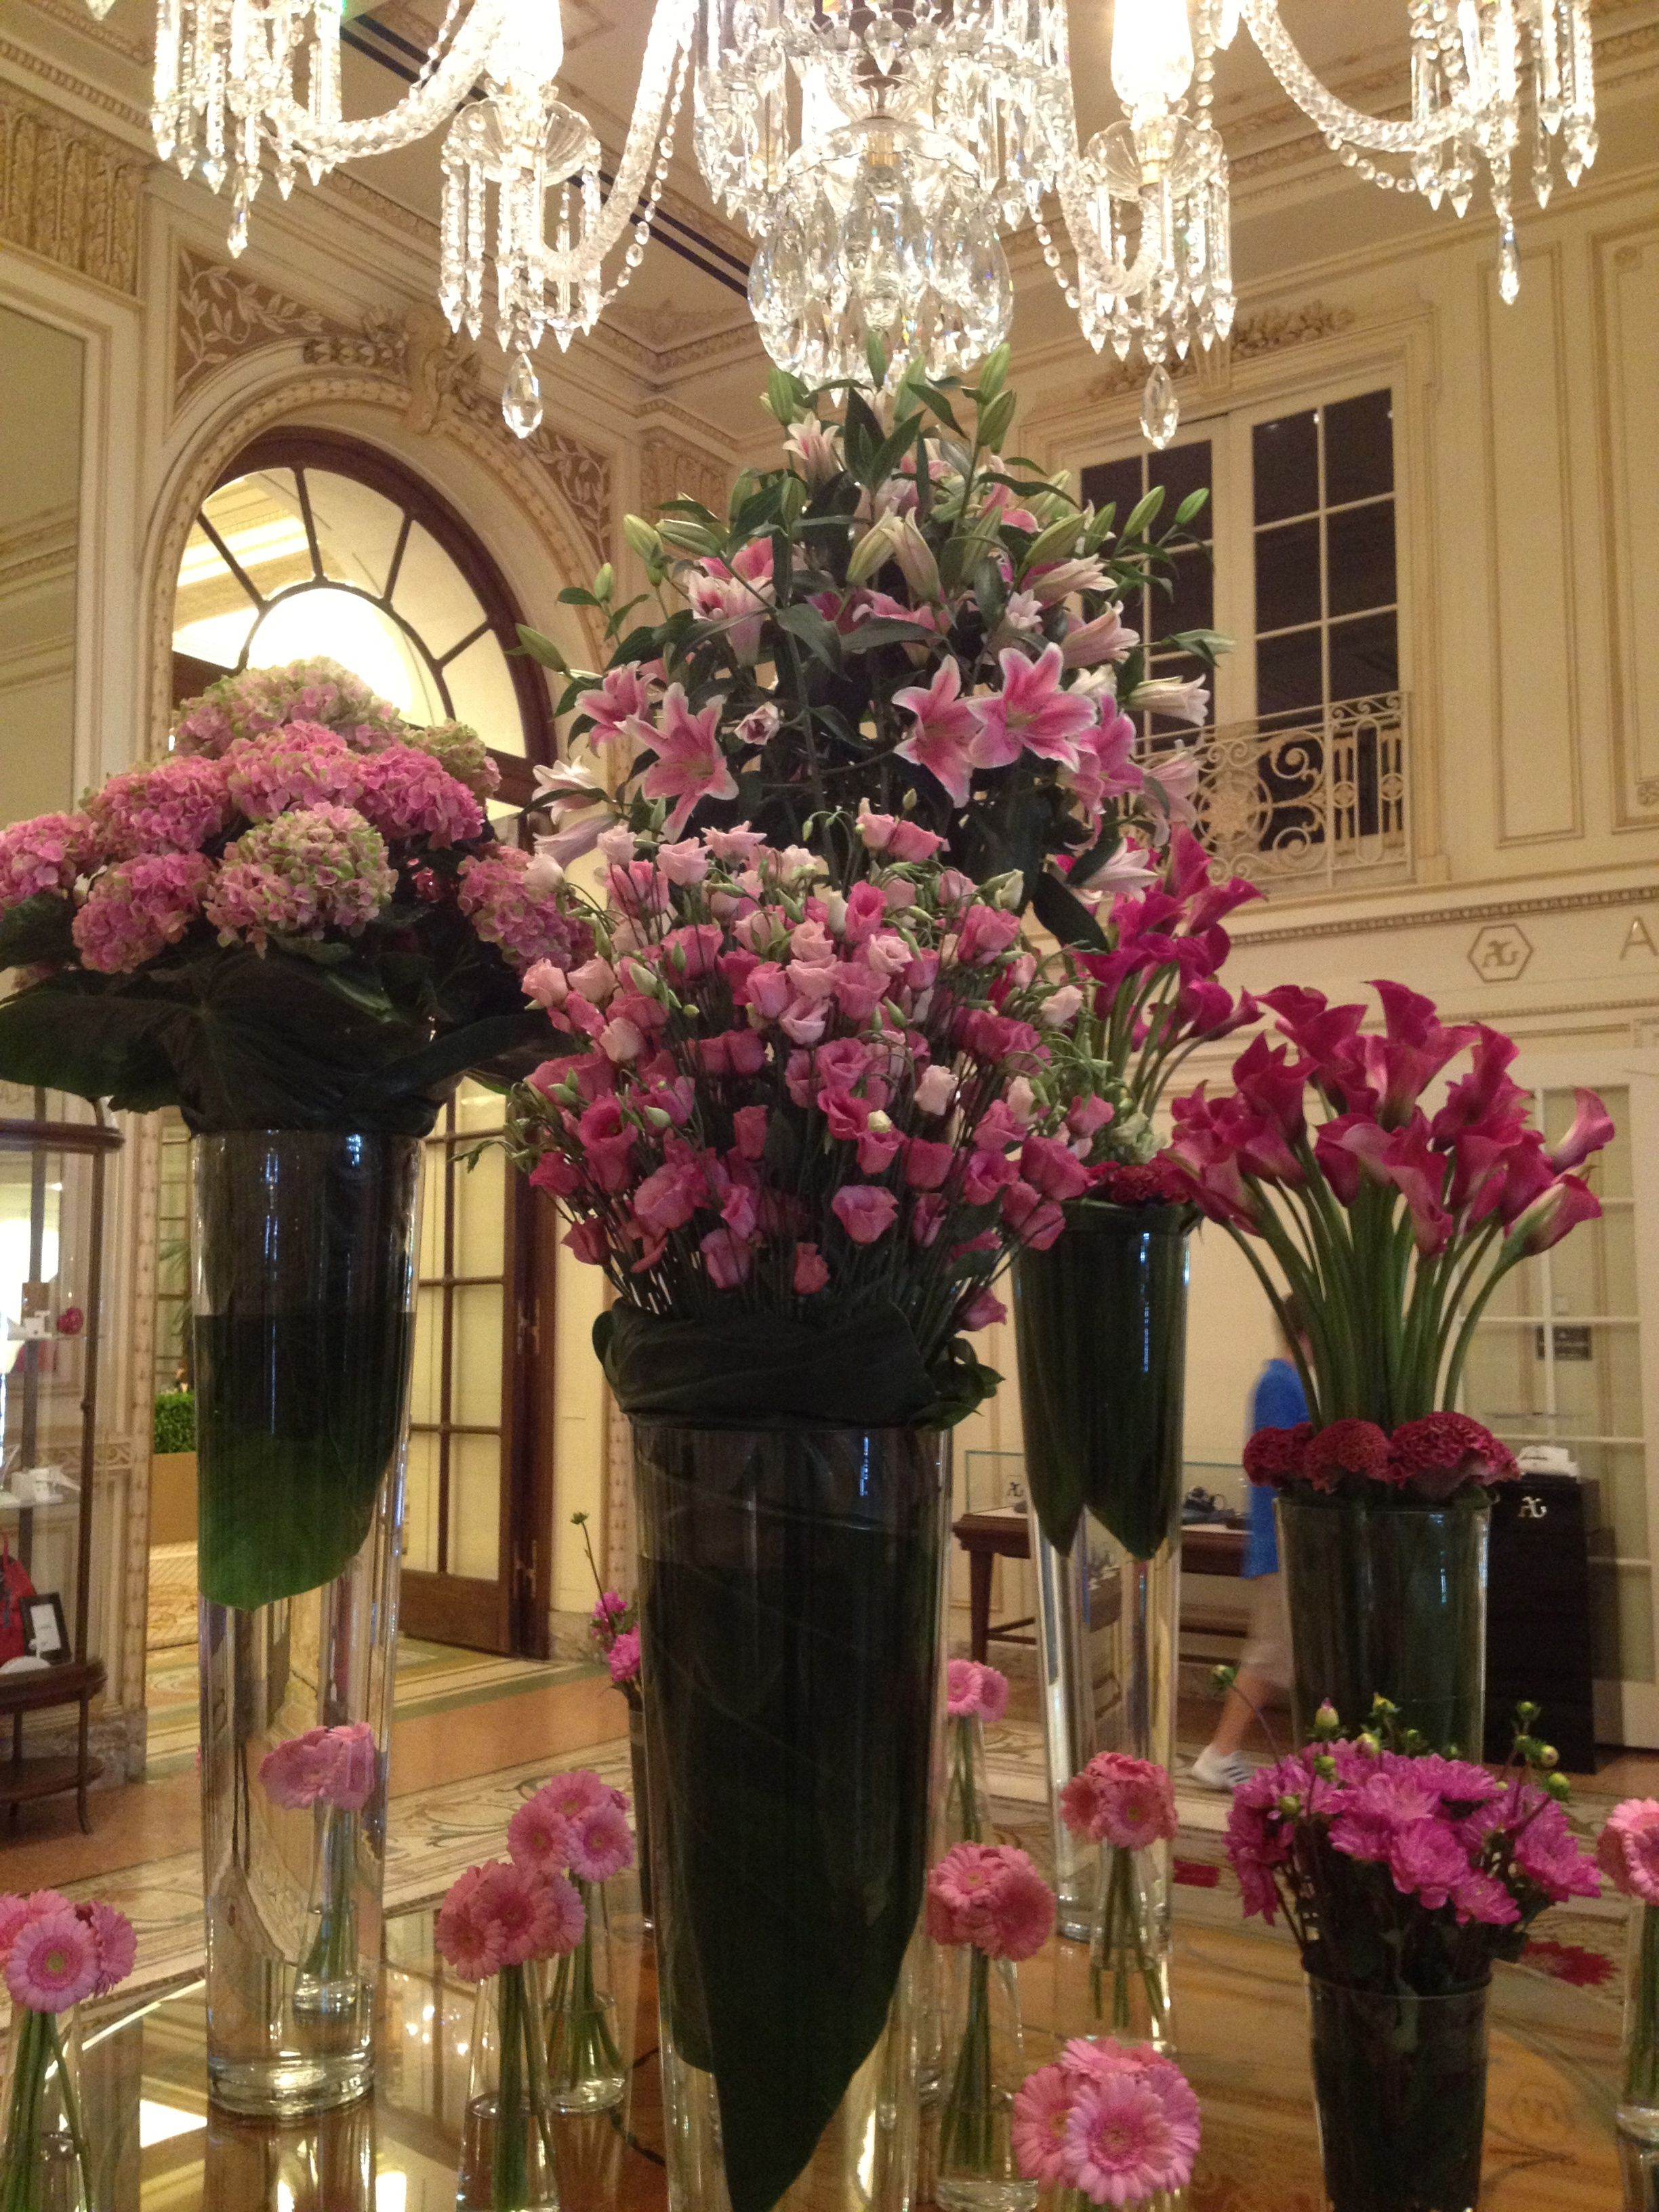 These flowers smelled so lovely. The Plaza Hotel, NYC